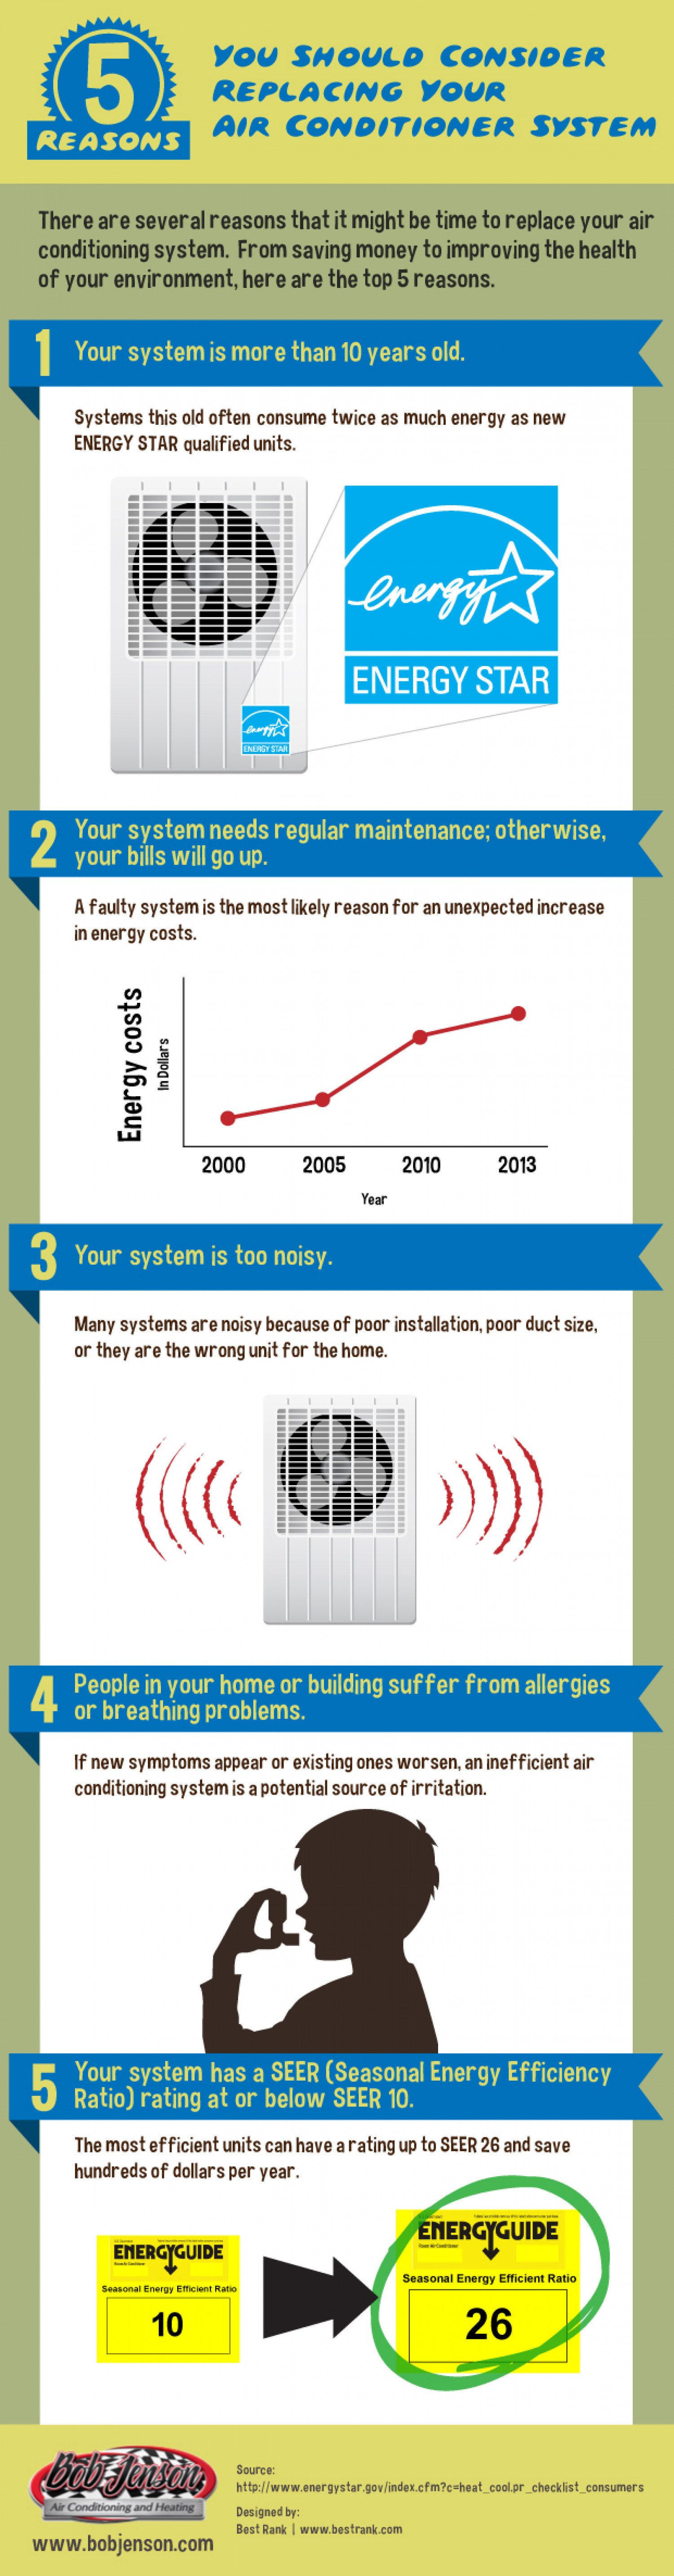 5 Reasons to Replace Your Air Conditioning System  Infographic